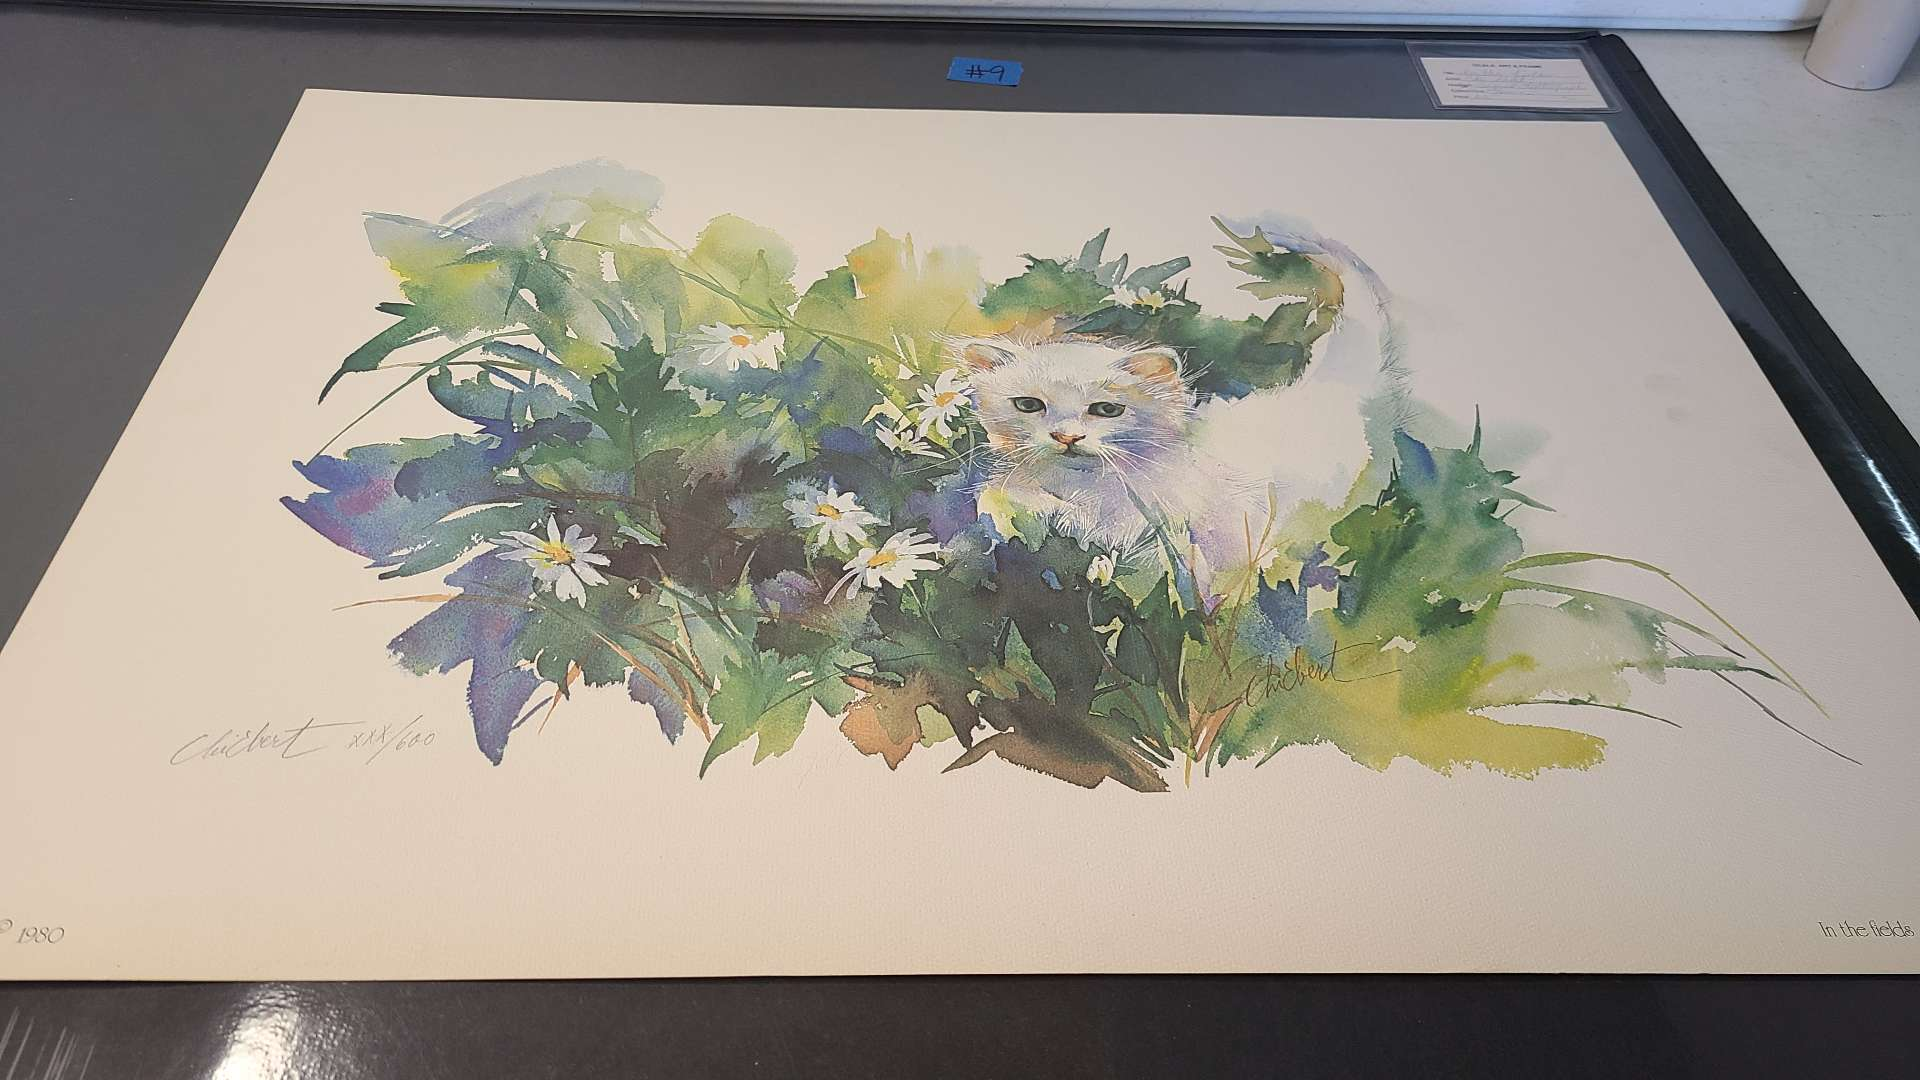 Lot # 9 Lot of 2 Animal Inspired Signed & Numbered Lithographs